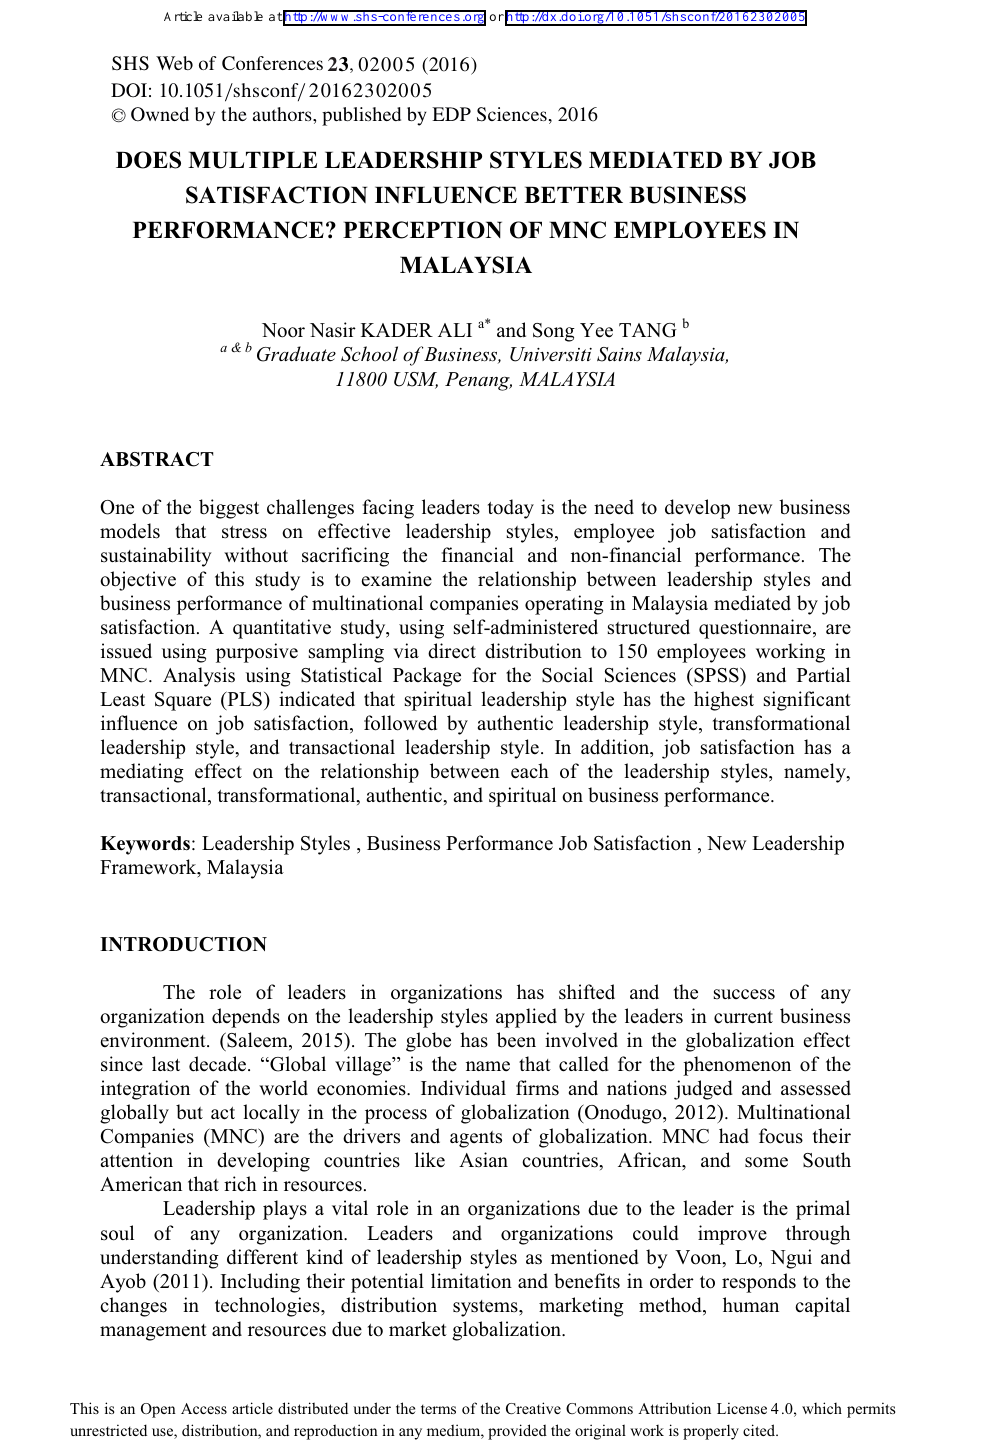 Does Multiple Leadership Styles Mediated By Job Satisfaction Influence Better Business Performance Perception Of Mnc Employees In Malaysia Topic Of Research Paper In Economics And Business Download Scholarly Article Pdf And